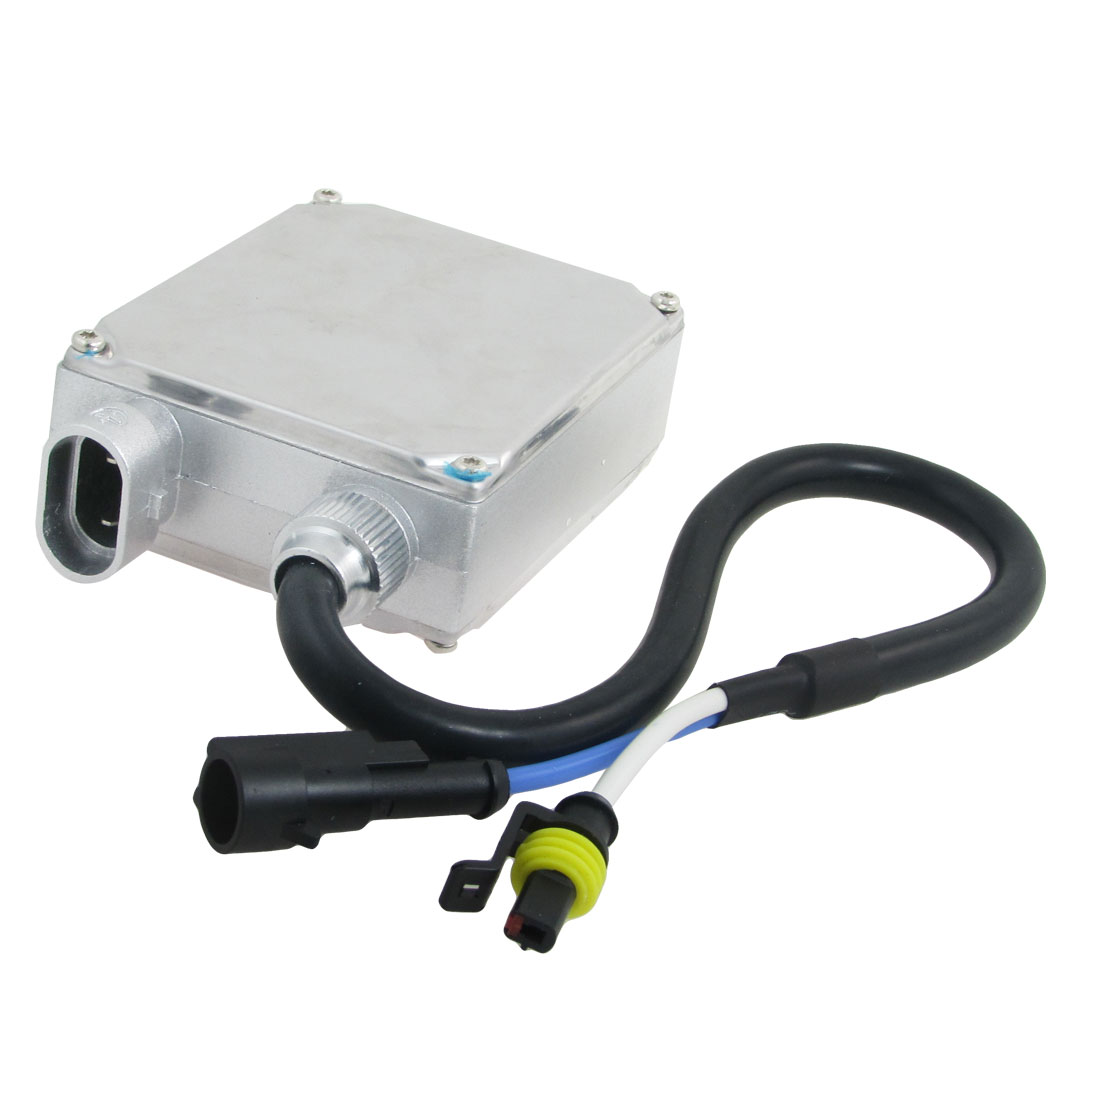 Vehicle Car HID Xenon Ballast Replacement 35W 12V for H1 H3 H4 H7 H10 Bulb